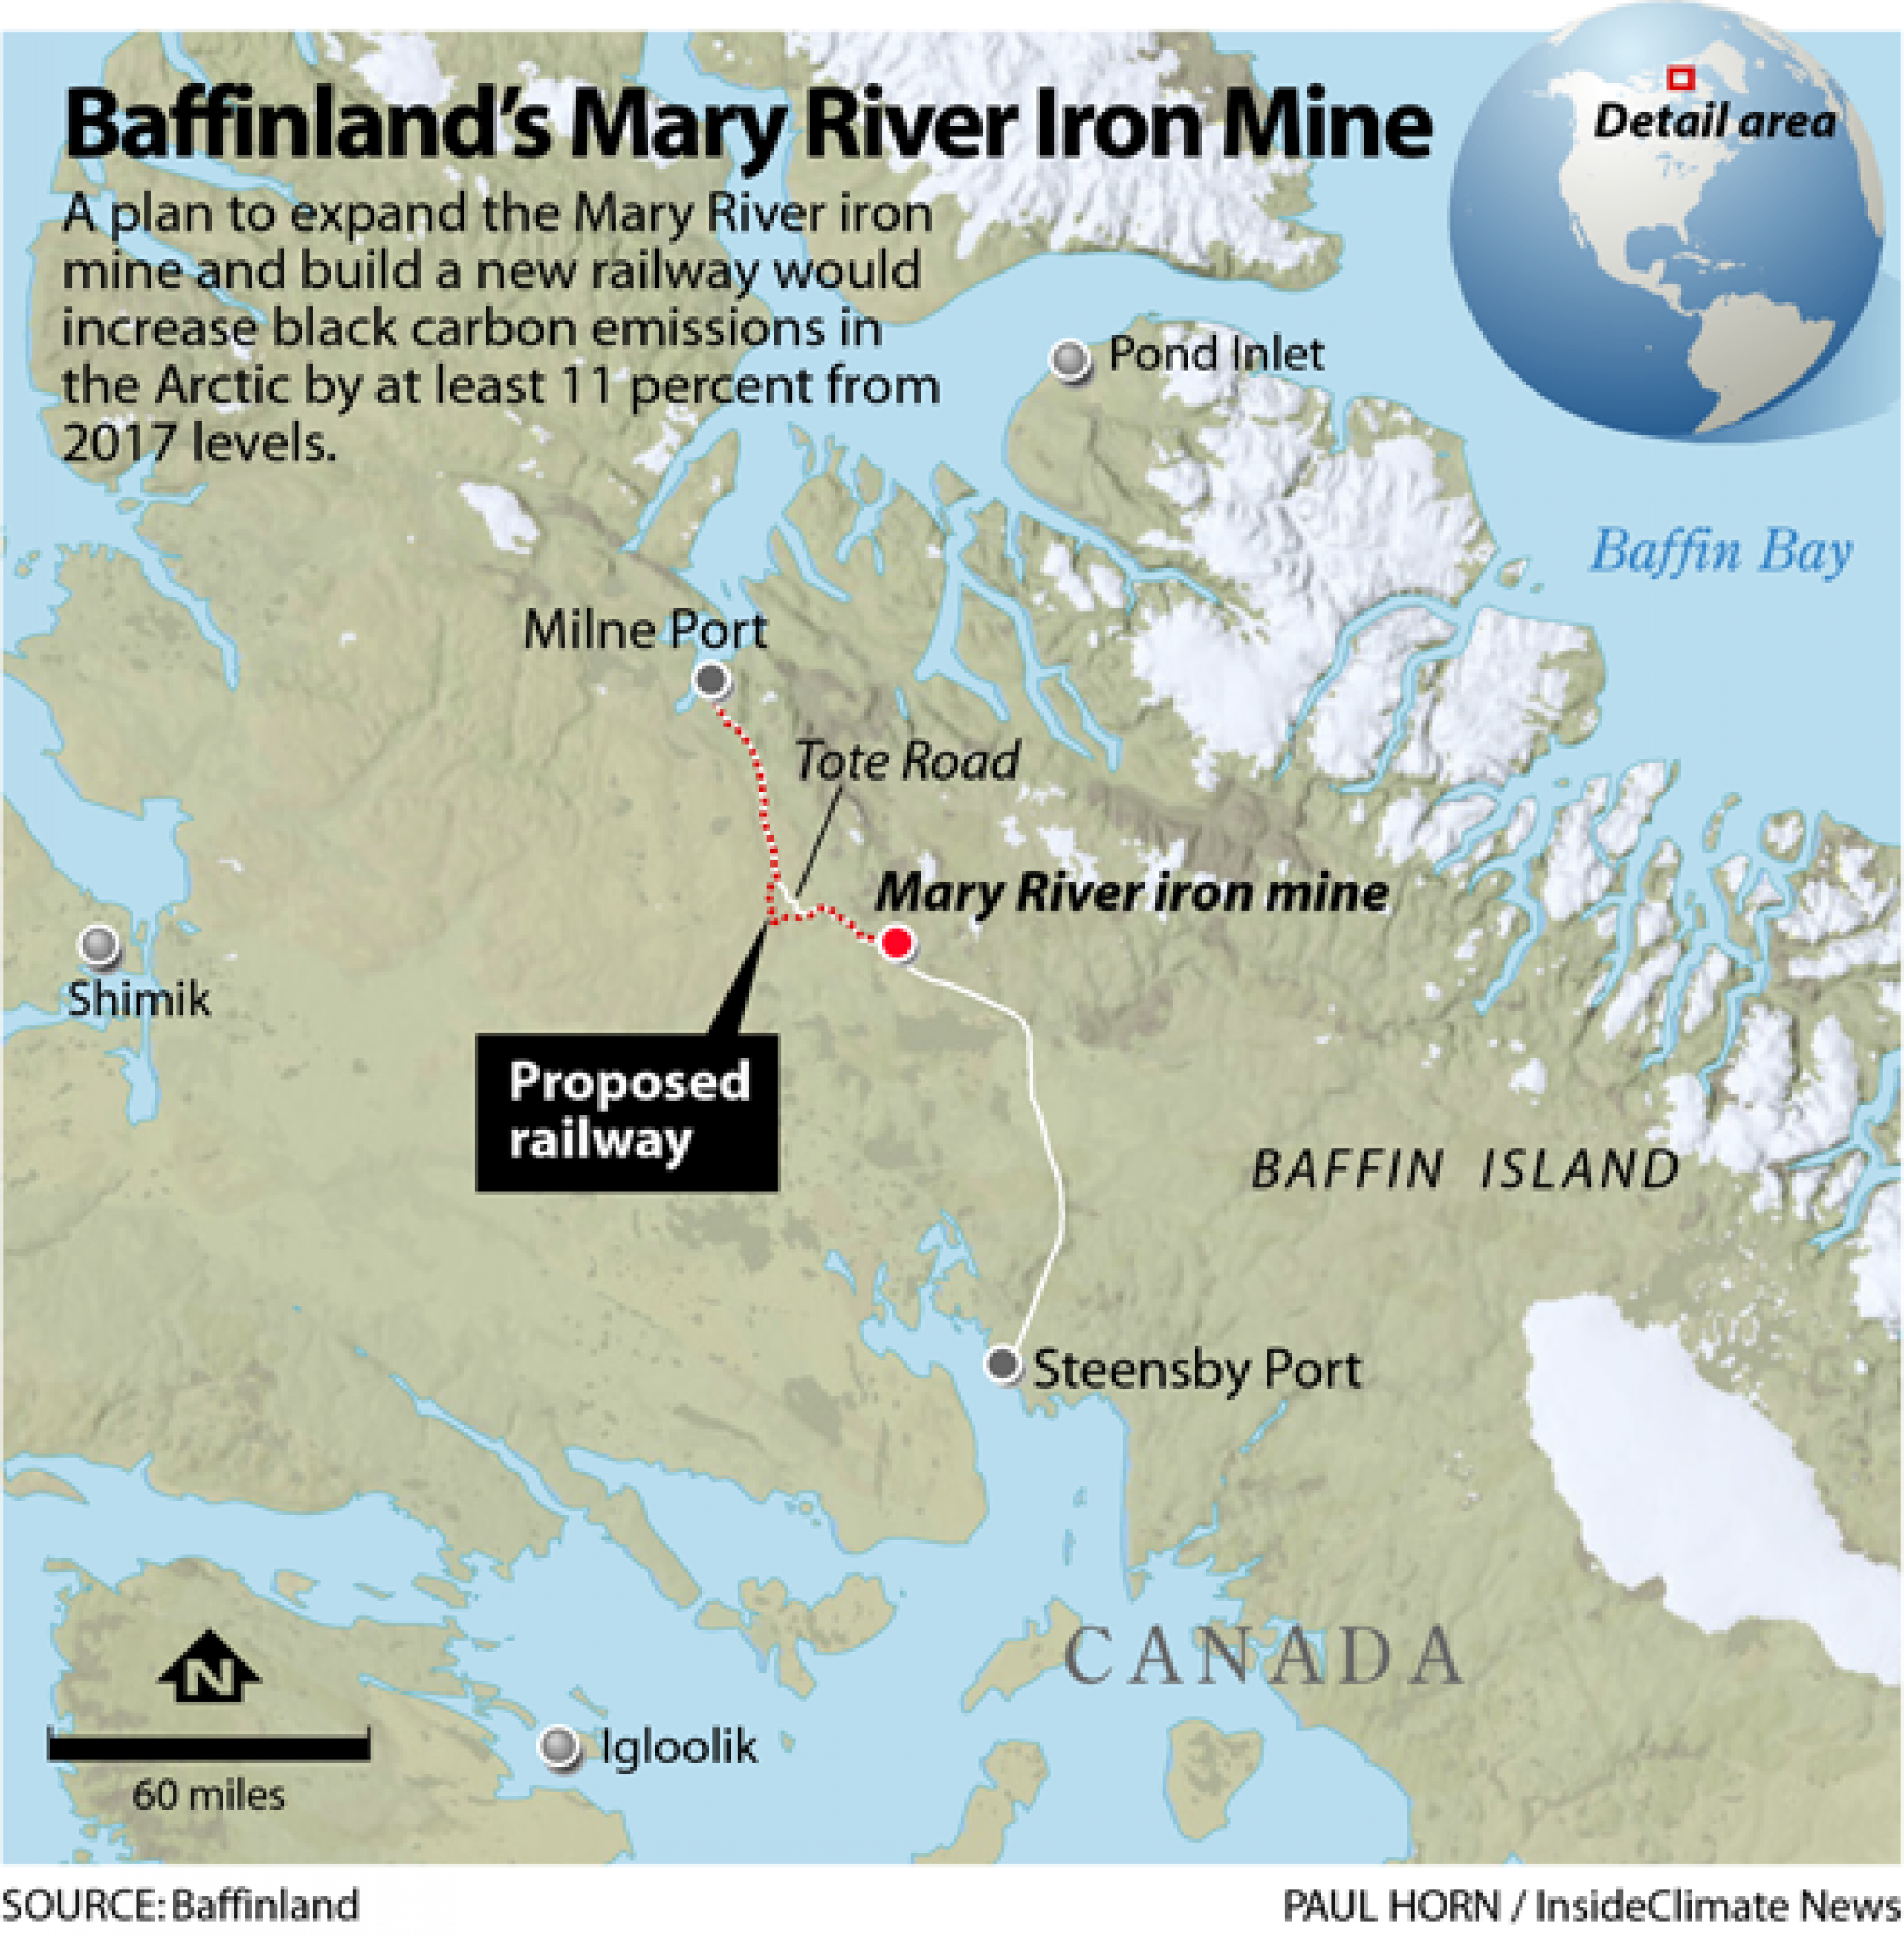 A map of Baffinland's Mary River iron mine.